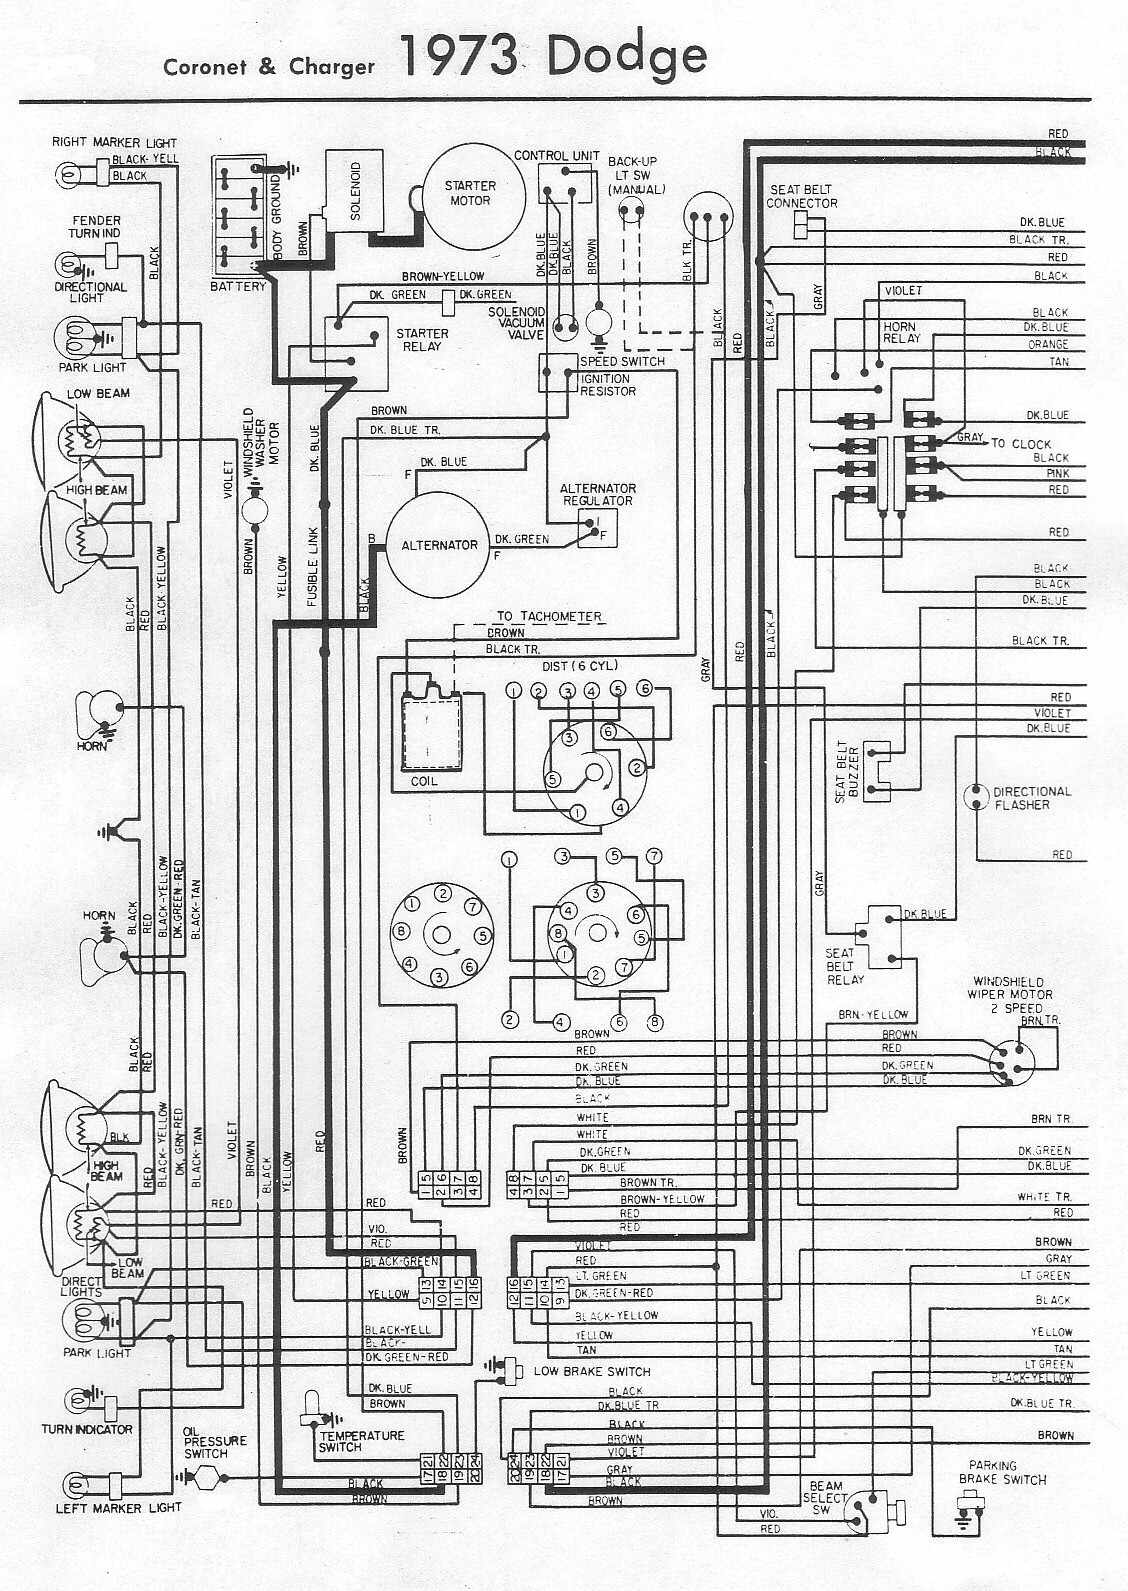 Wiring Diagram For 1970 Charger Detailed Schematic Diagrams Ford Mach 1 1967 Gtx Yamaha 48 Volt Battery